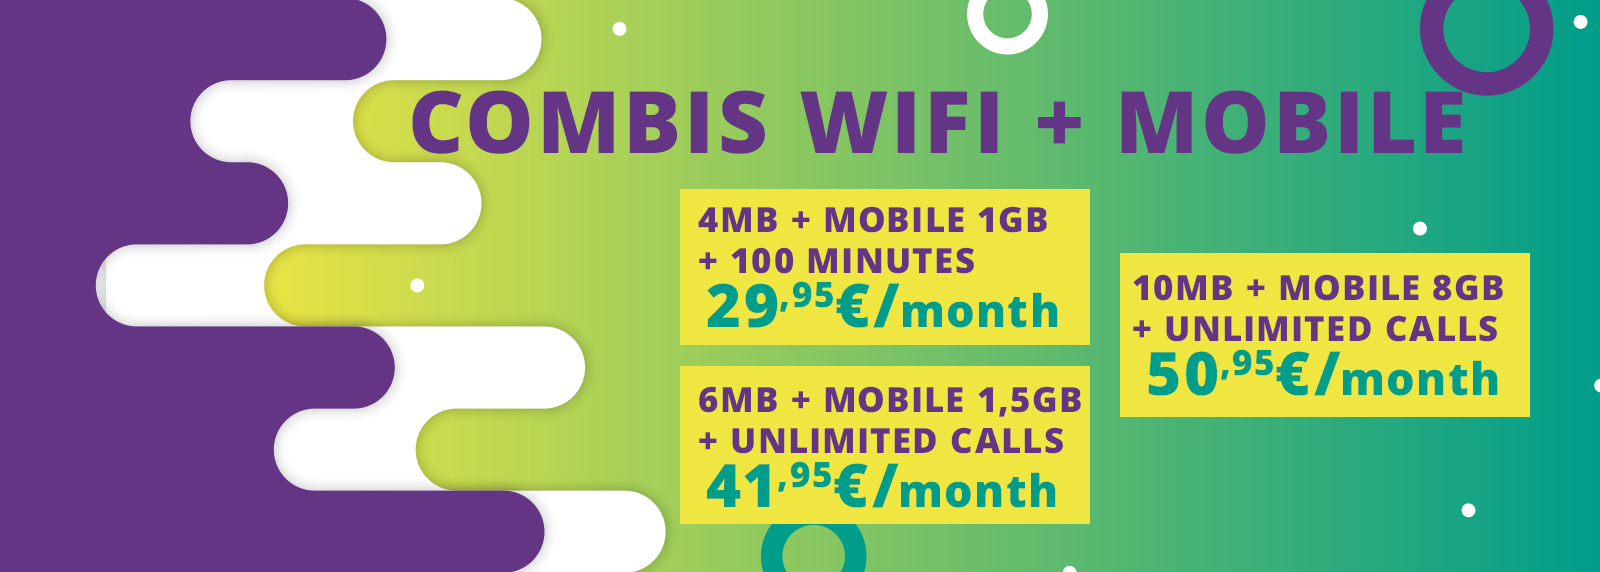 wifi and mobile